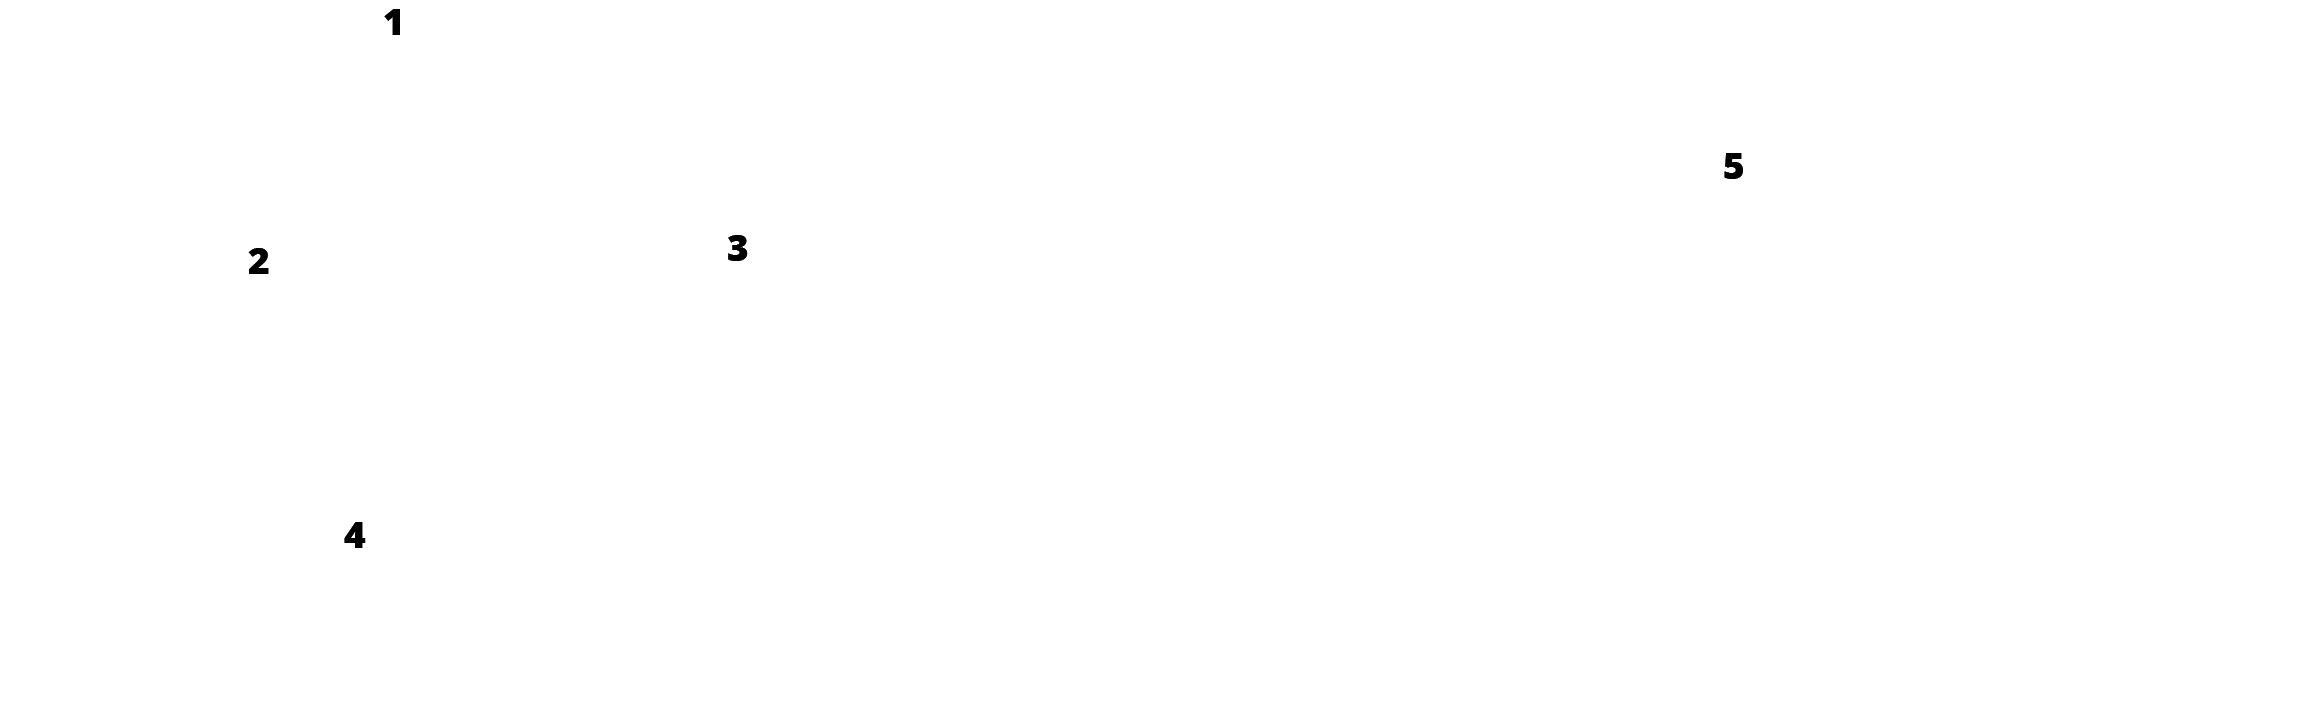 CMT Rod Pod - Technical Drawing 03